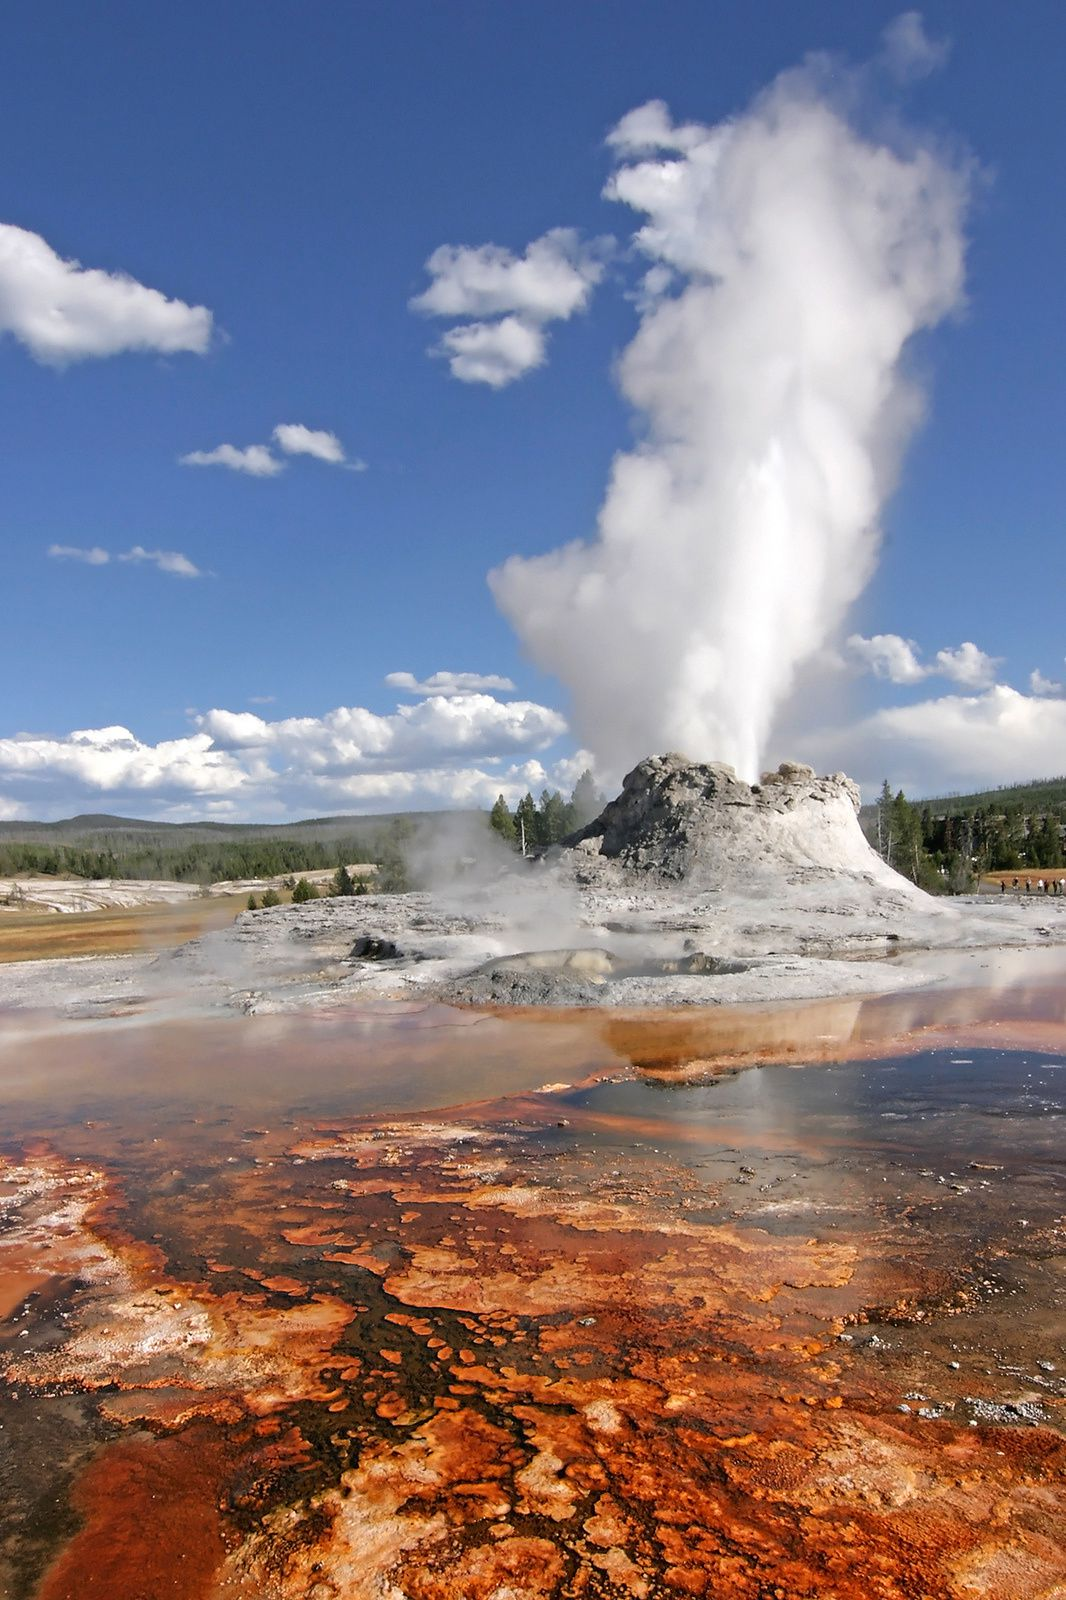 Yellowstone National Park - Upper Geyser Basin - Castle Geyser en éruption en 2007 - photo YNP